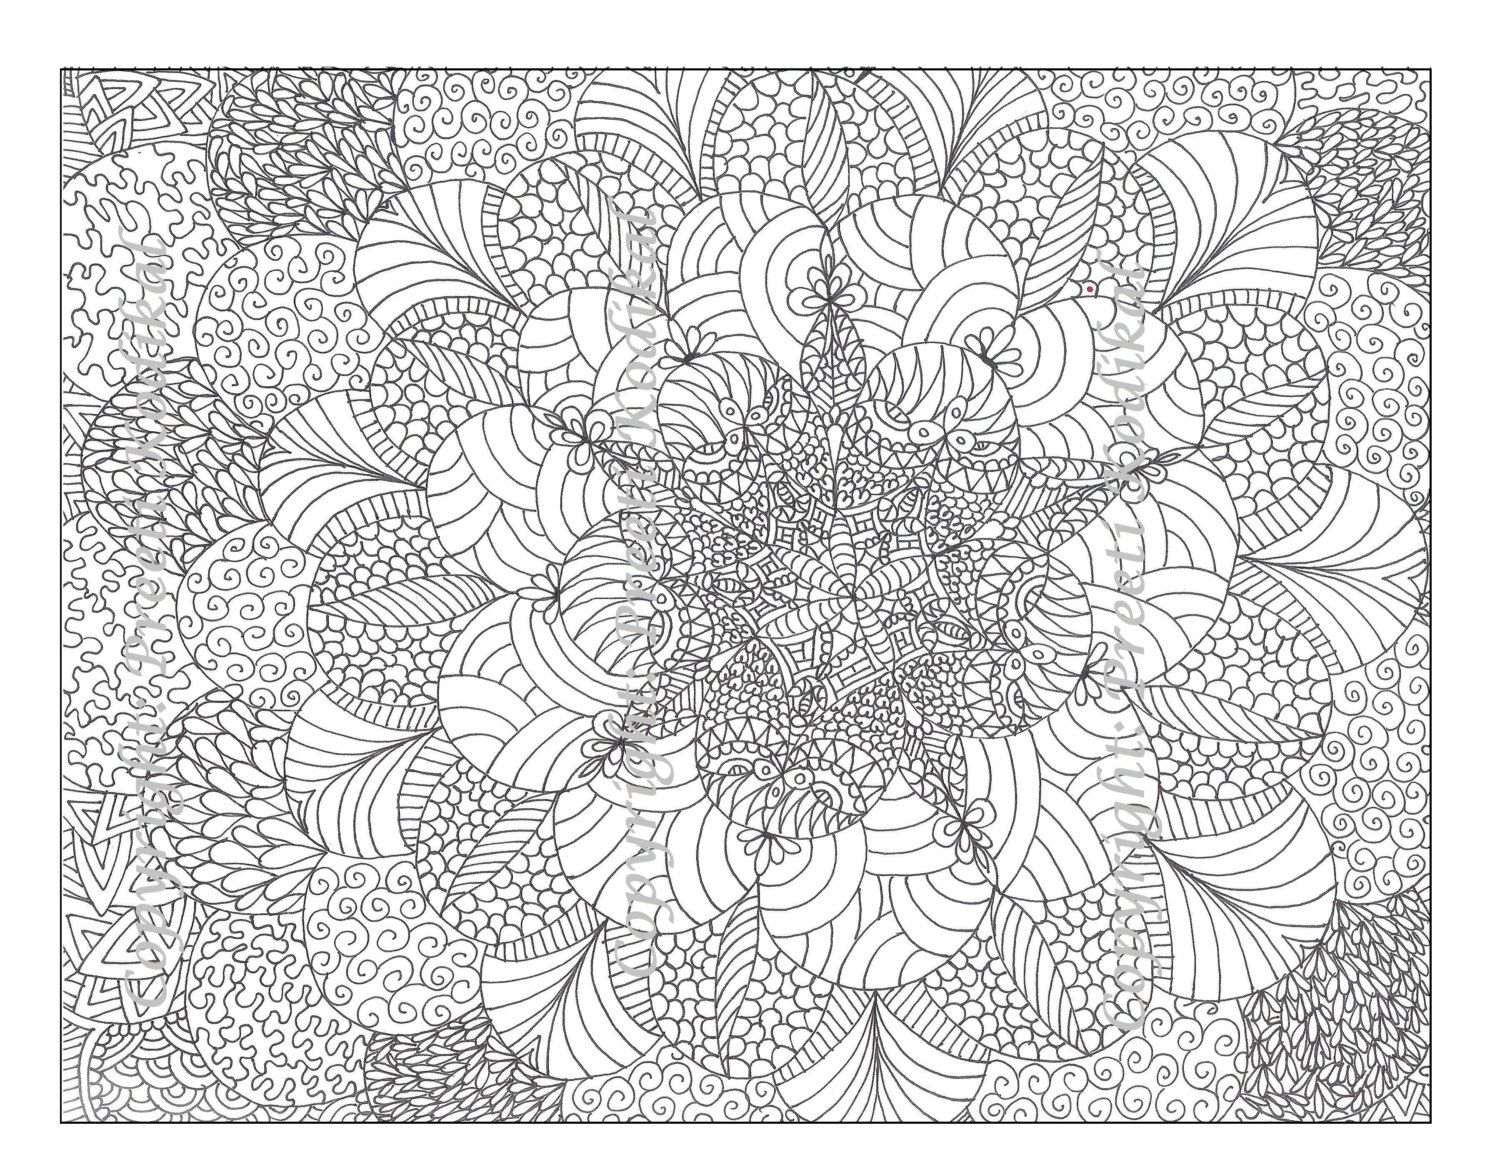 Disney zentangle coloring pages - Pen Illustration Printable Coloring Page Zentangle Inspired Henna Or Mehndi Inspired Indian Designs Like Mandala Abstract